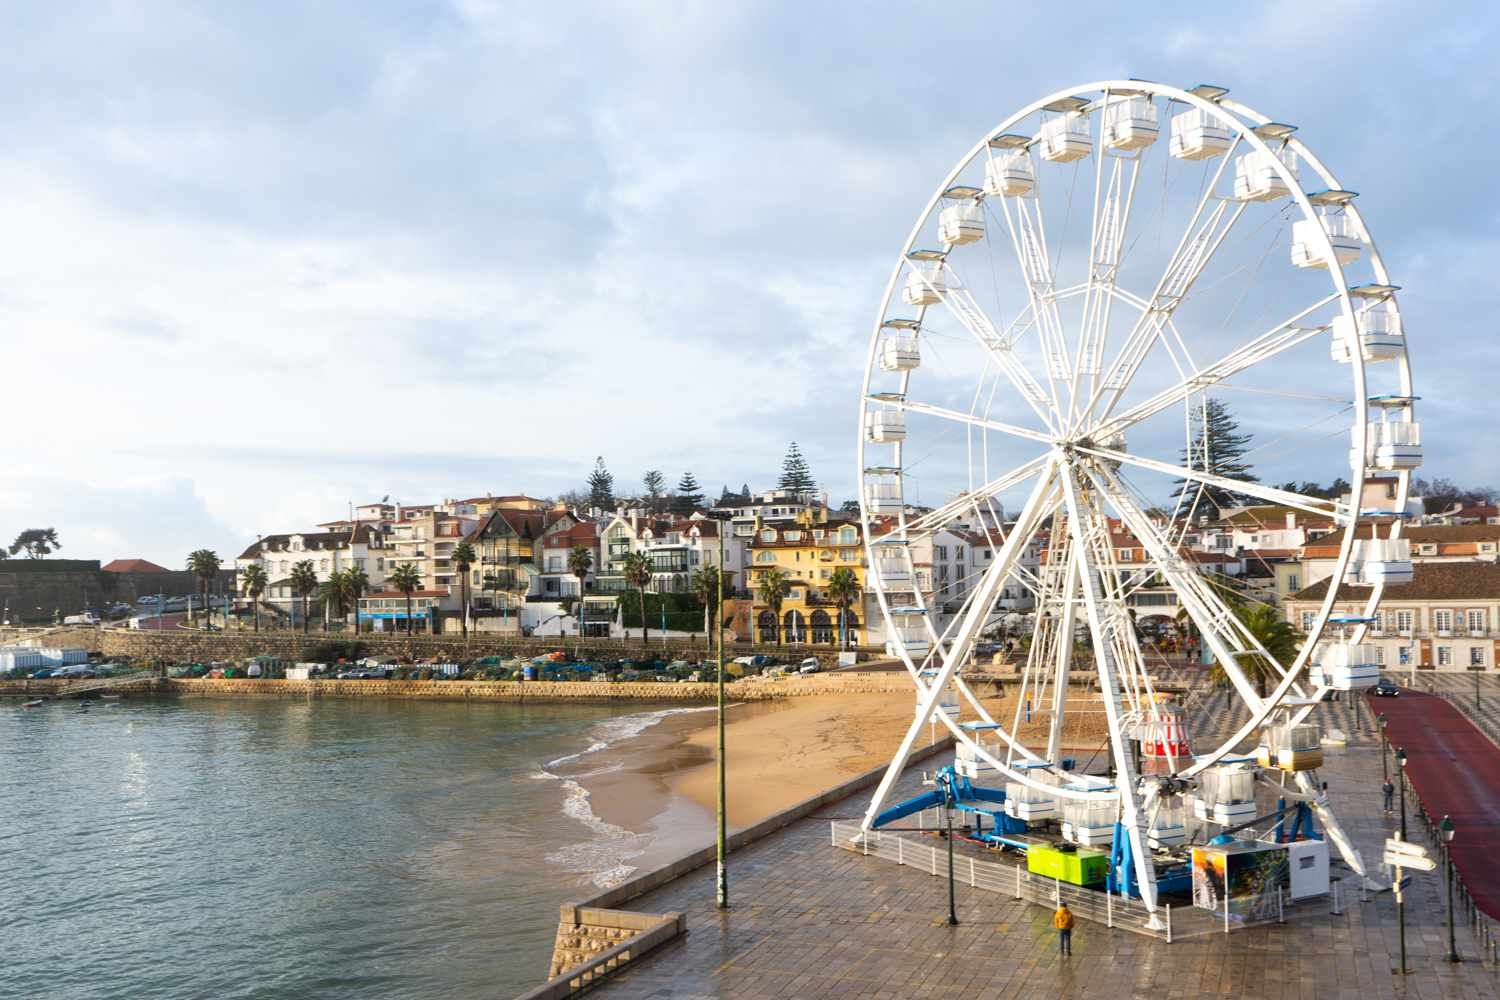 View of a beach in Cascais with a ferries wheel